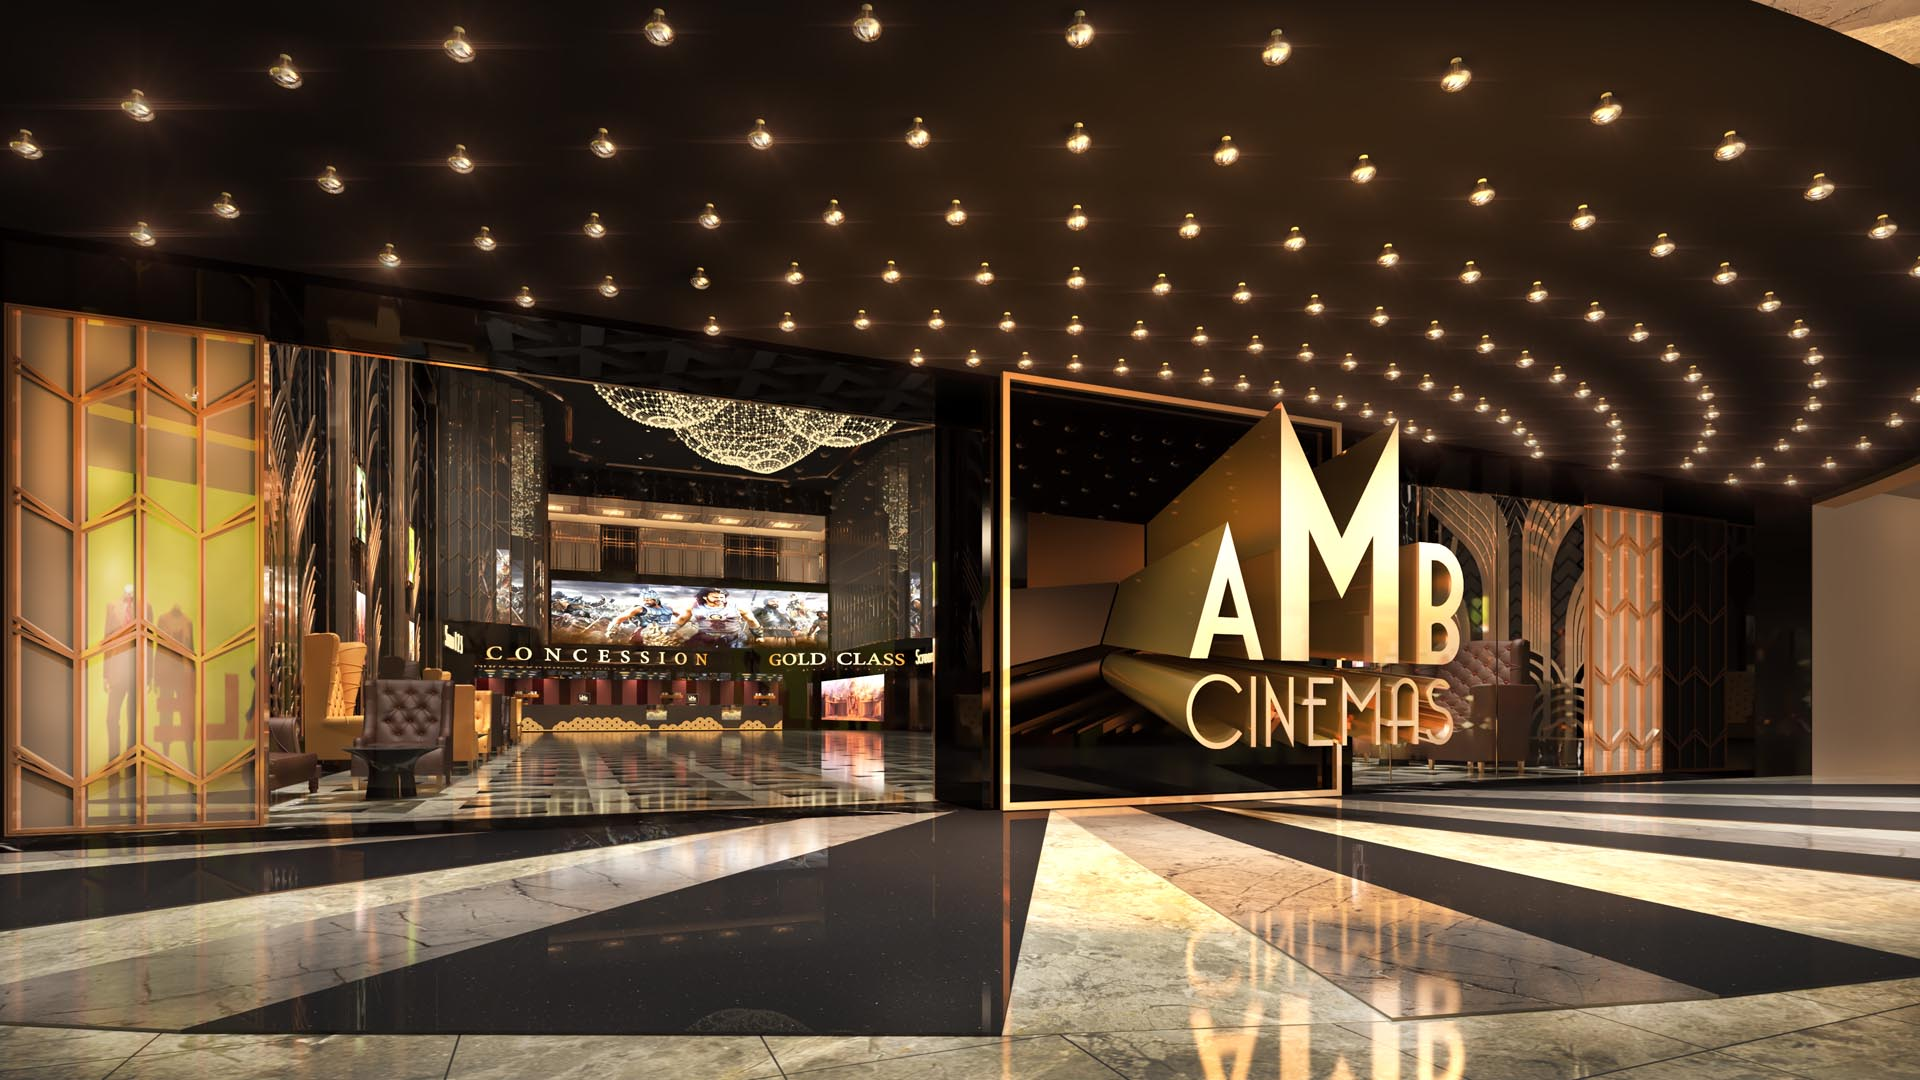 Designing For Small Spaces Architects Amp Designers For Cinema Theatre Multiplex